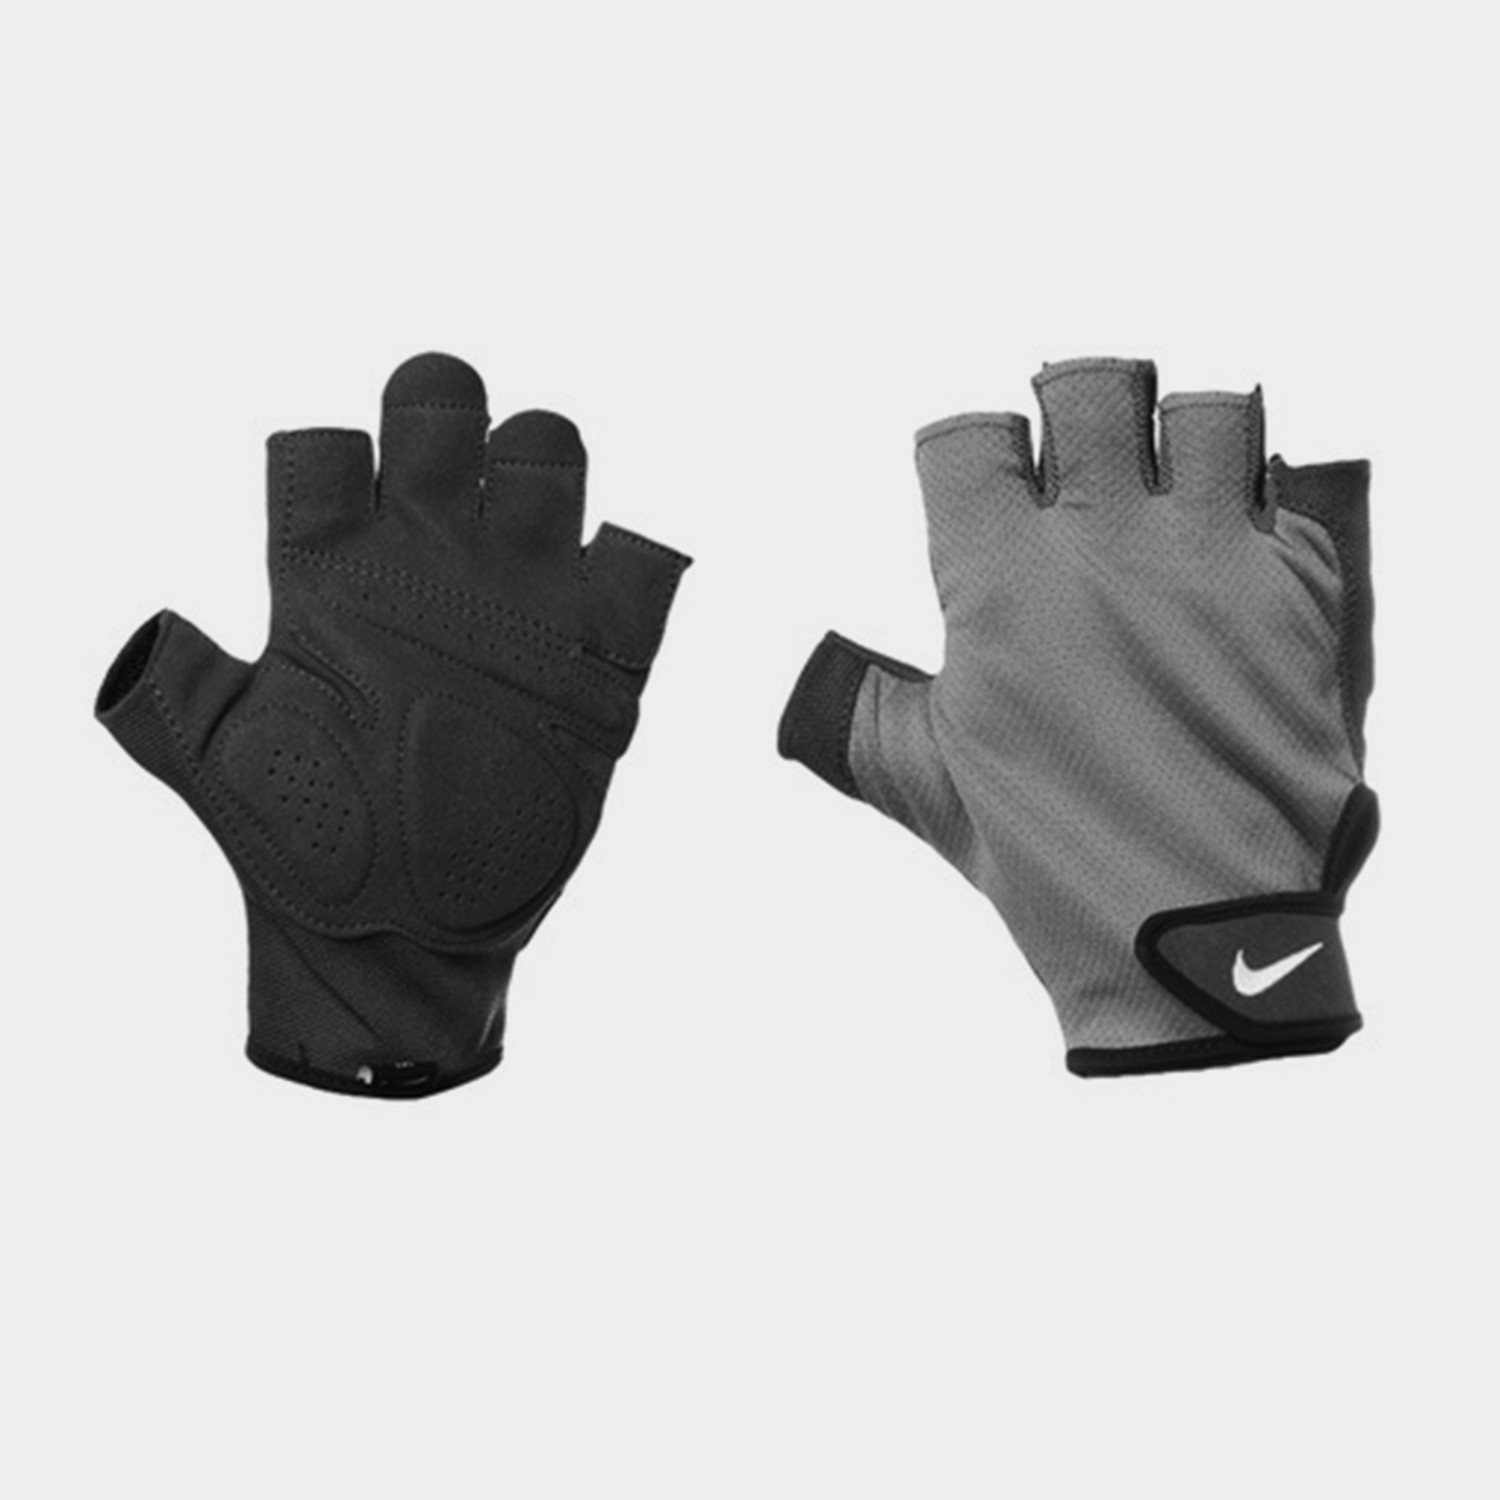 Nike Men's Essential Fitness Gloves - Ανδρικά Γάντια Προπόνησης (9000063688_48835)